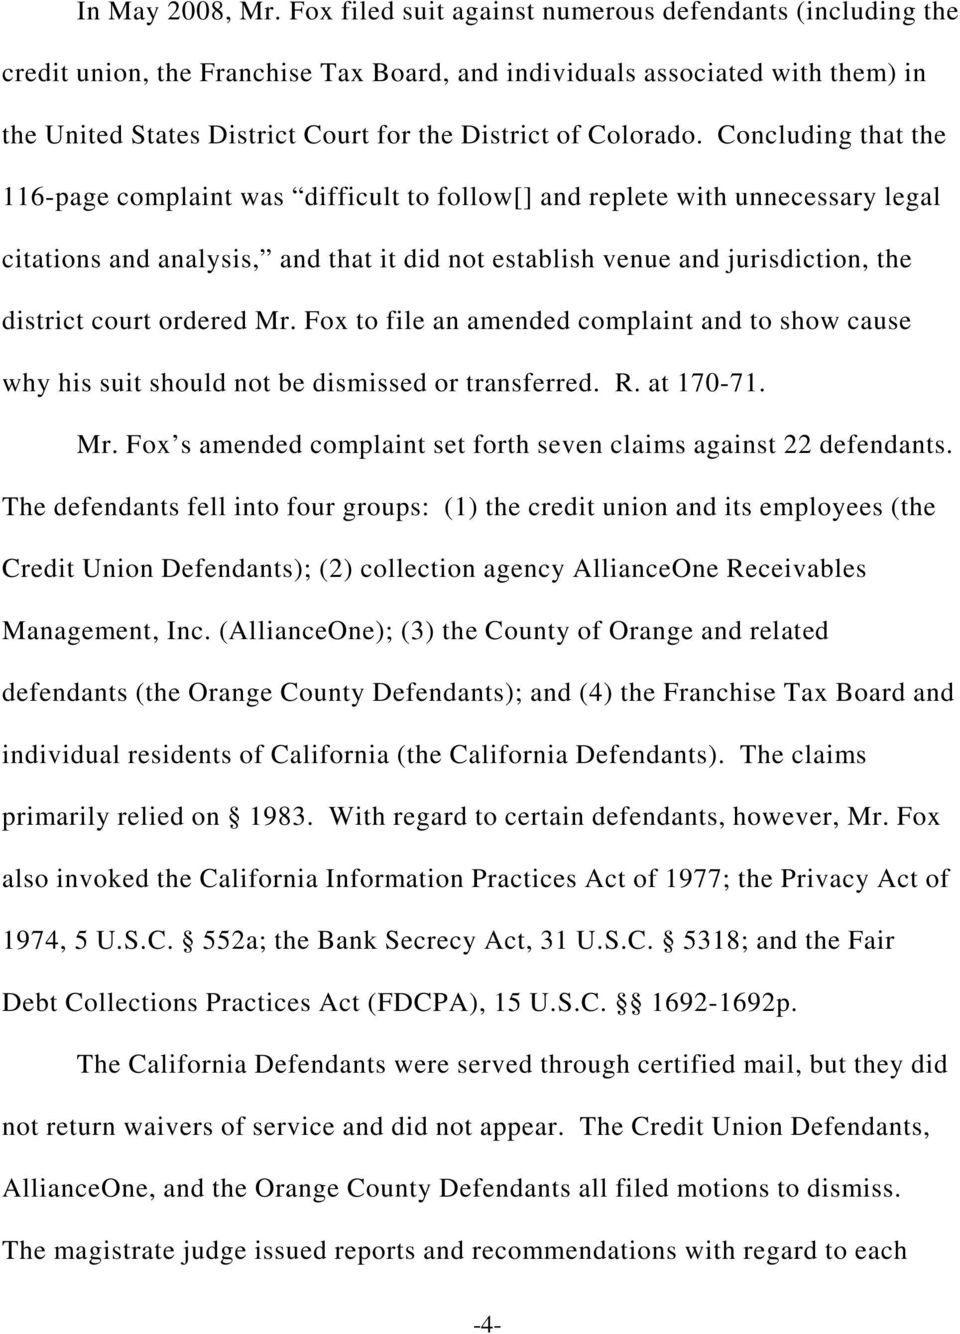 Concluding that the 116-page complaint was difficult to follow[] and replete with unnecessary legal citations and analysis, and that it did not establish venue and jurisdiction, the district court